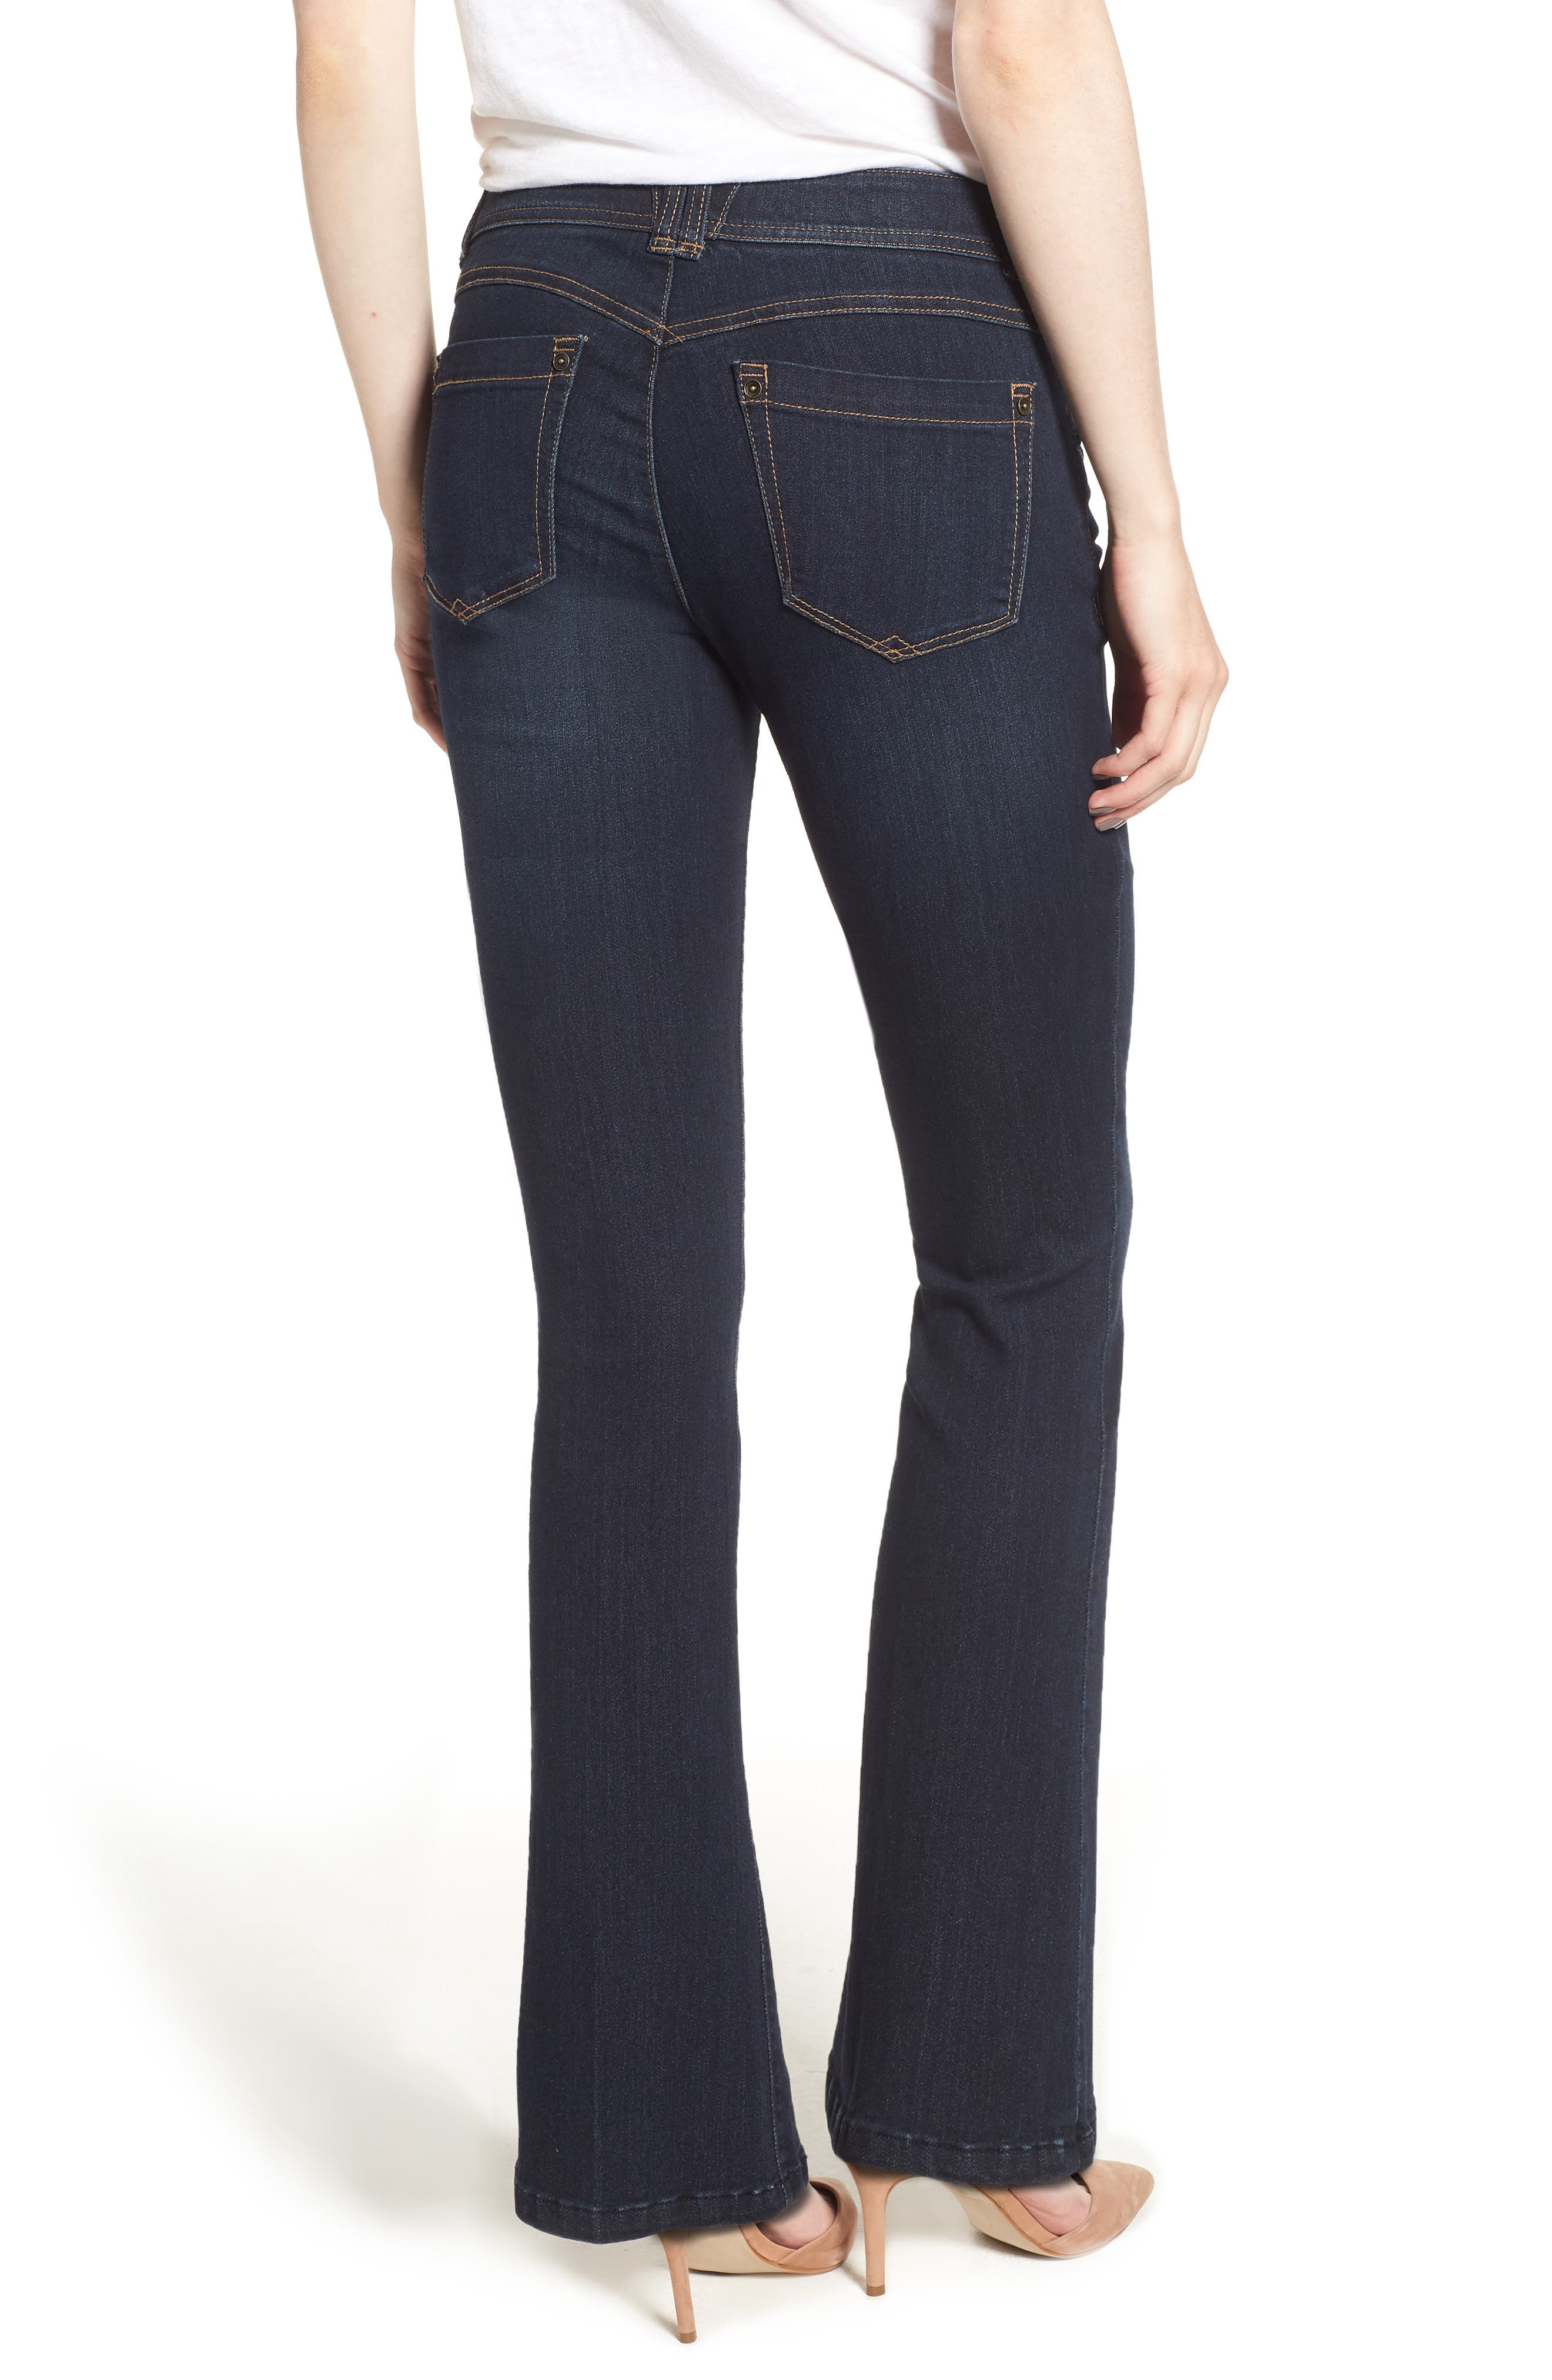 Ab-solution Itty Bitty Bootcut Jeans,                             Alternate thumbnail 2, color,                             402